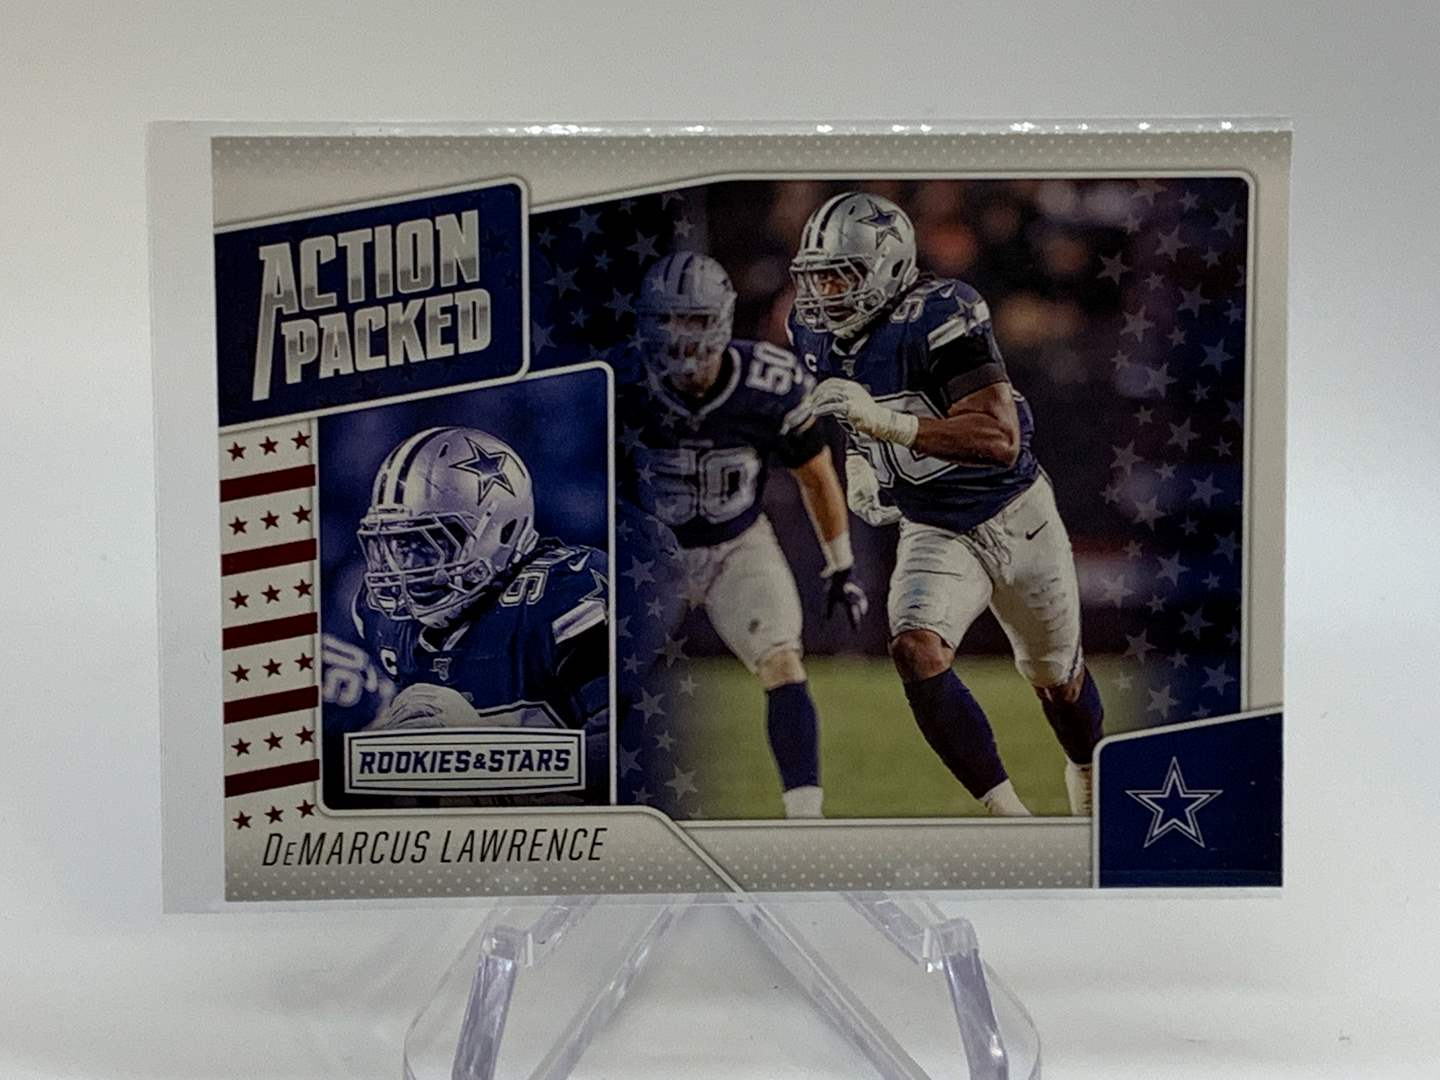 Lot # 203 2020 Panini Rookies & Stars DEMARCUS LAWRENCE Action Packed (main image)